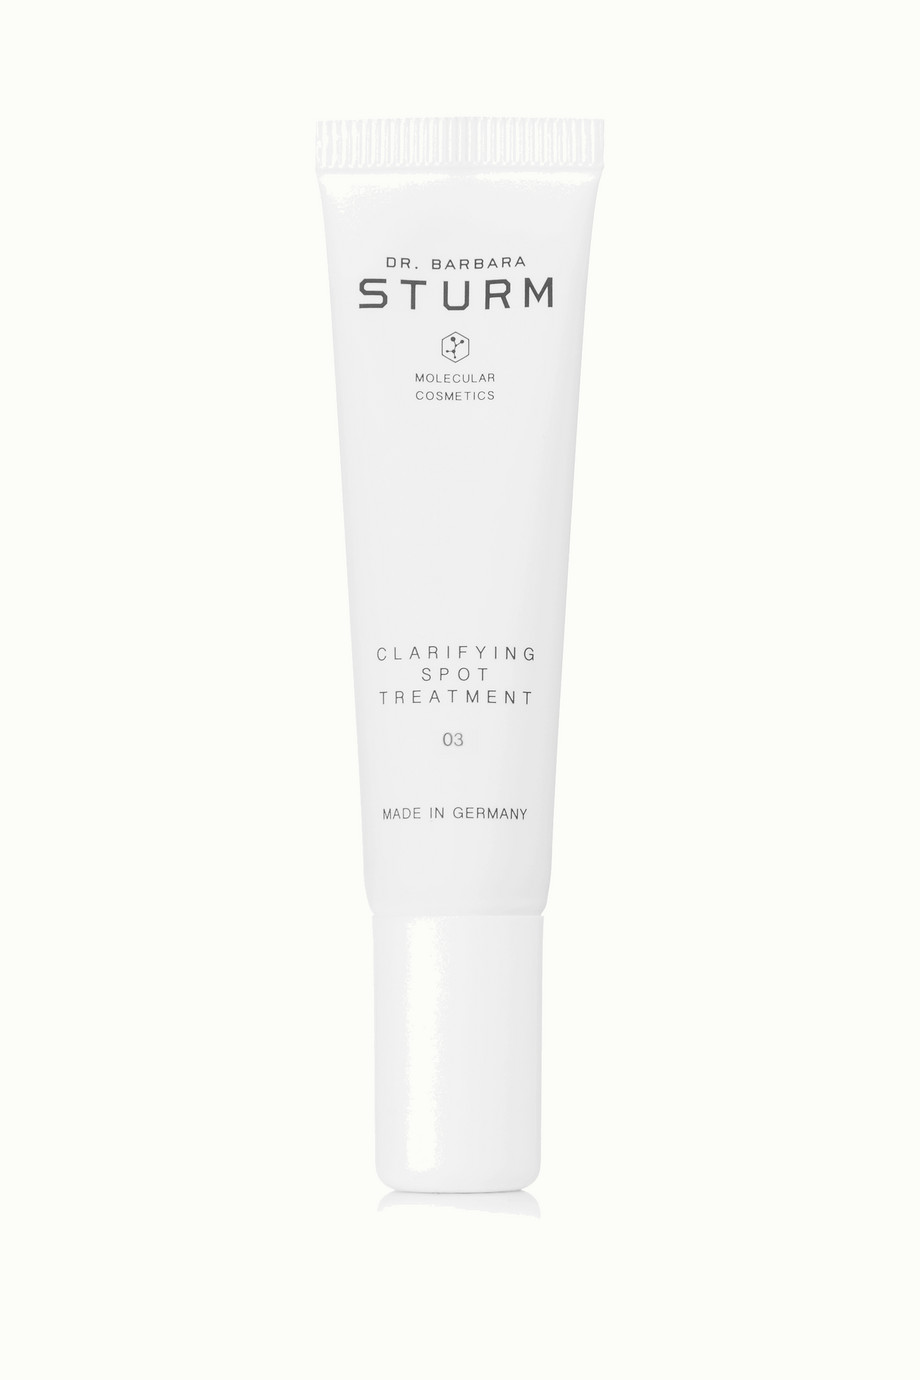 Dr. Barbara Sturm Clarifying Spot Treatment – 03, 15 ml – Anti-Pickel-Creme